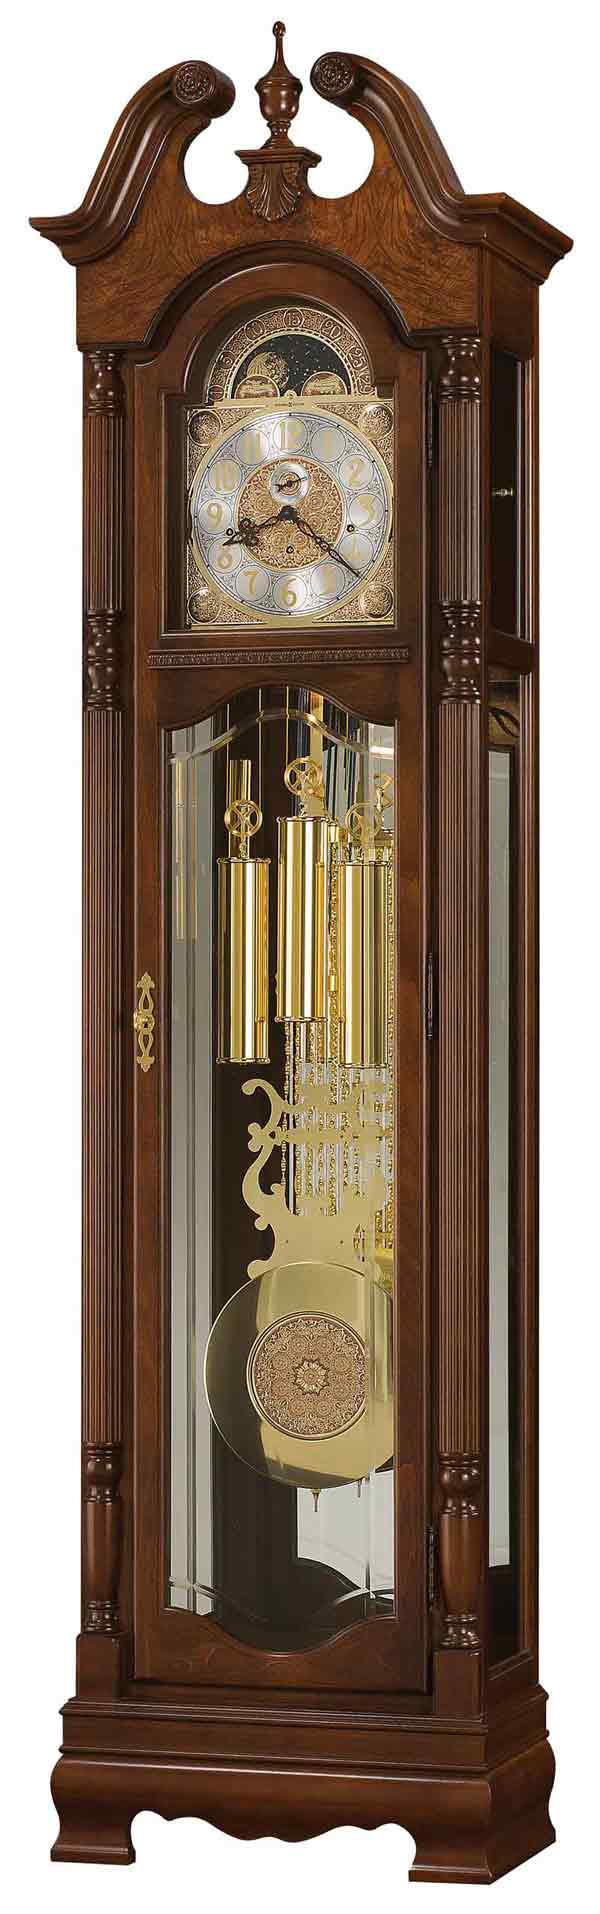 Grandfather clocks grandfather clocks from floor clock expert page howard miller baldwin 611 200 grandfather clock amipublicfo Image collections